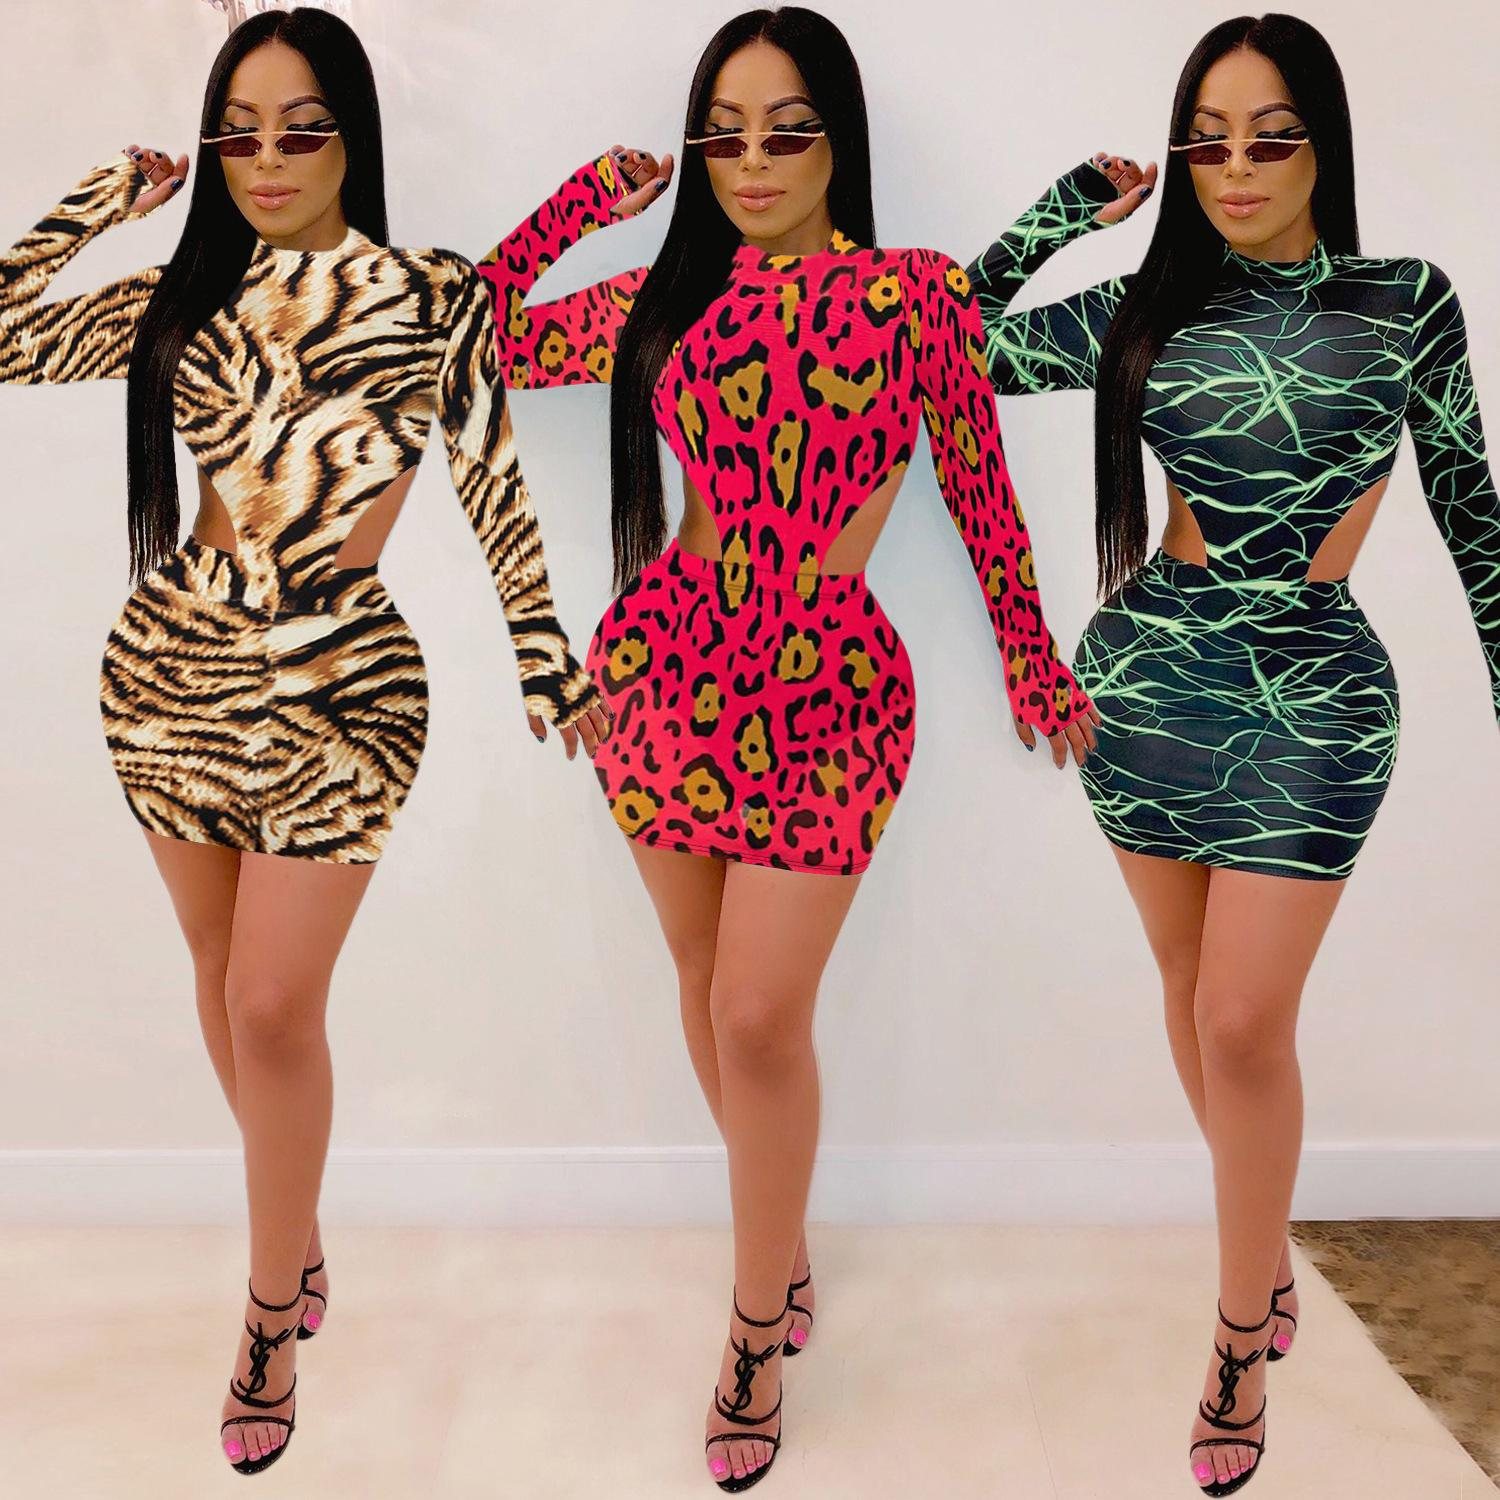 New Arrivel Sexy Ladies Suit Top Mini Dress Party Club Fashion Print Women Set Long Sleeve Bandage Outfits Bodysuit and Skirt Two Pieces